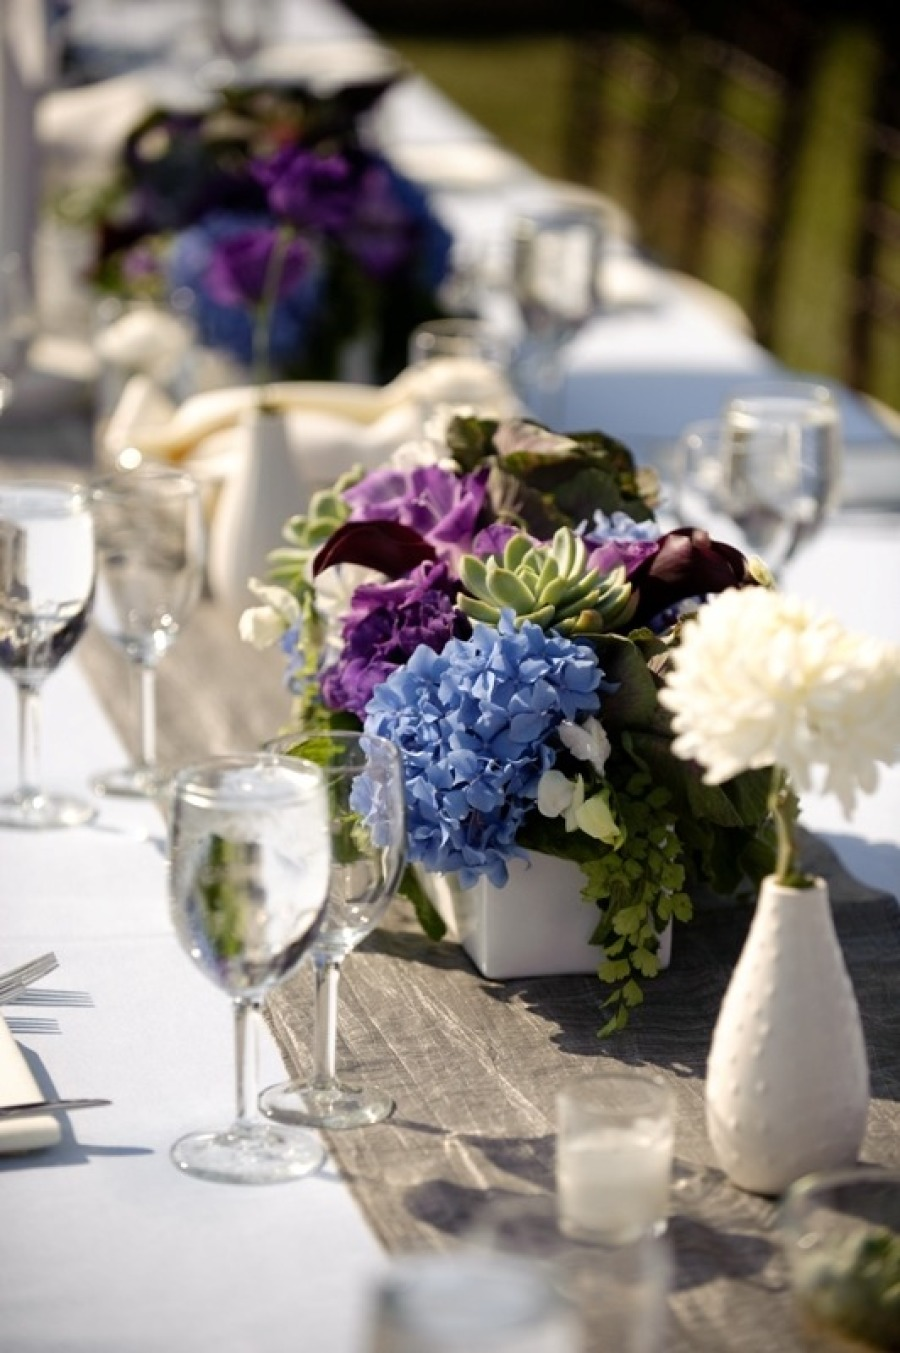 wedding-centerpiece-ideas-12-06102014nz